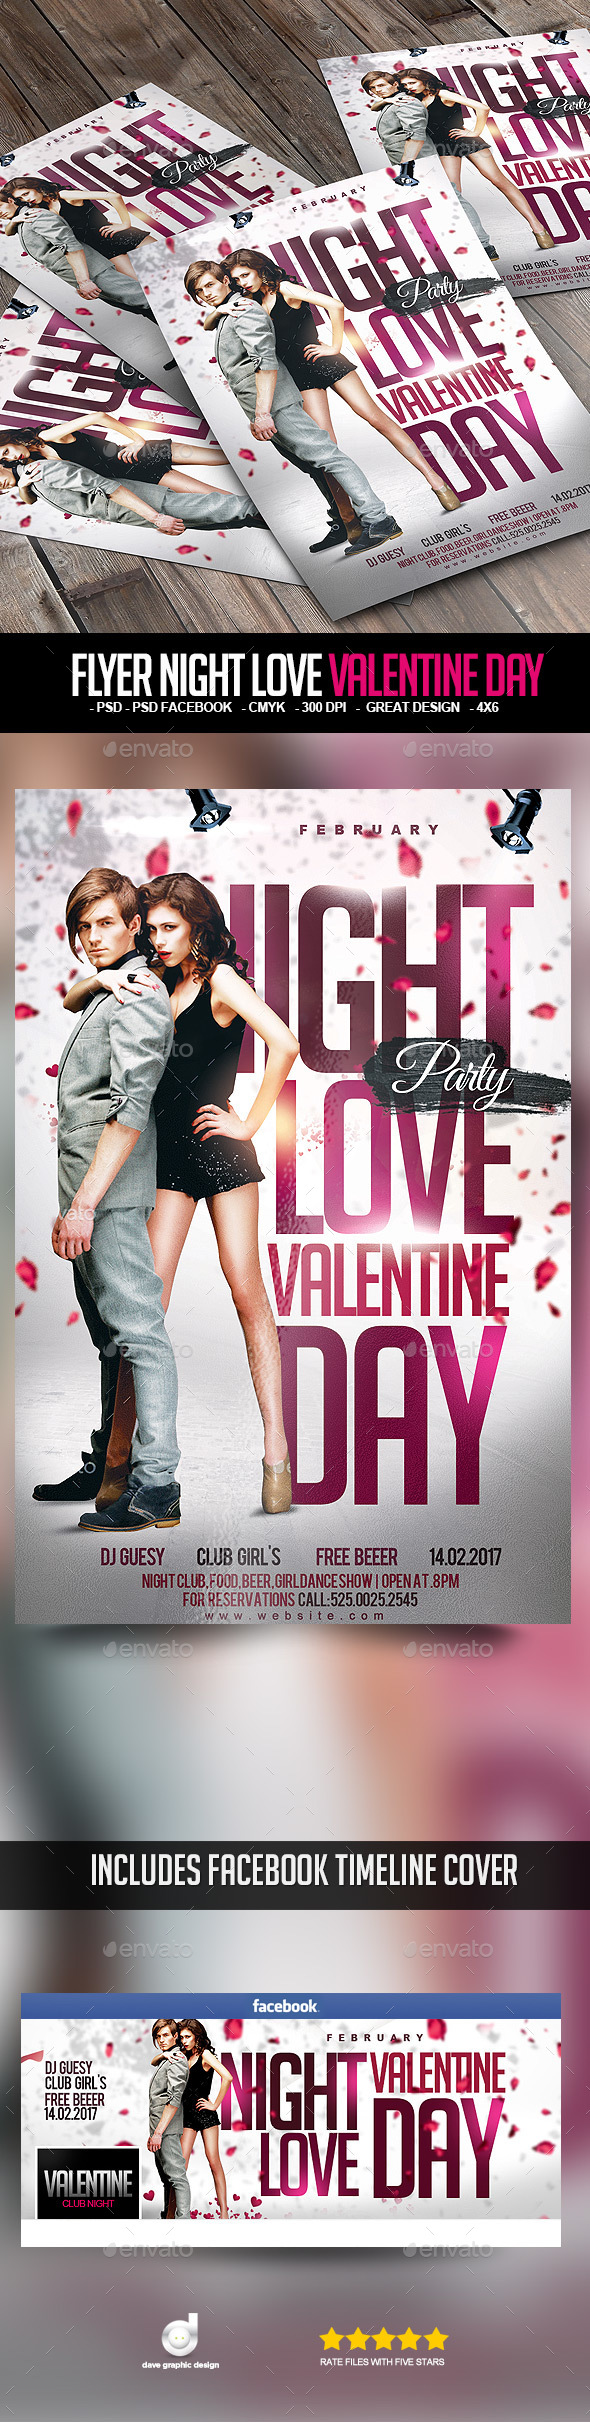 Flyer Night Love Valentine Day - Clubs & Parties Events